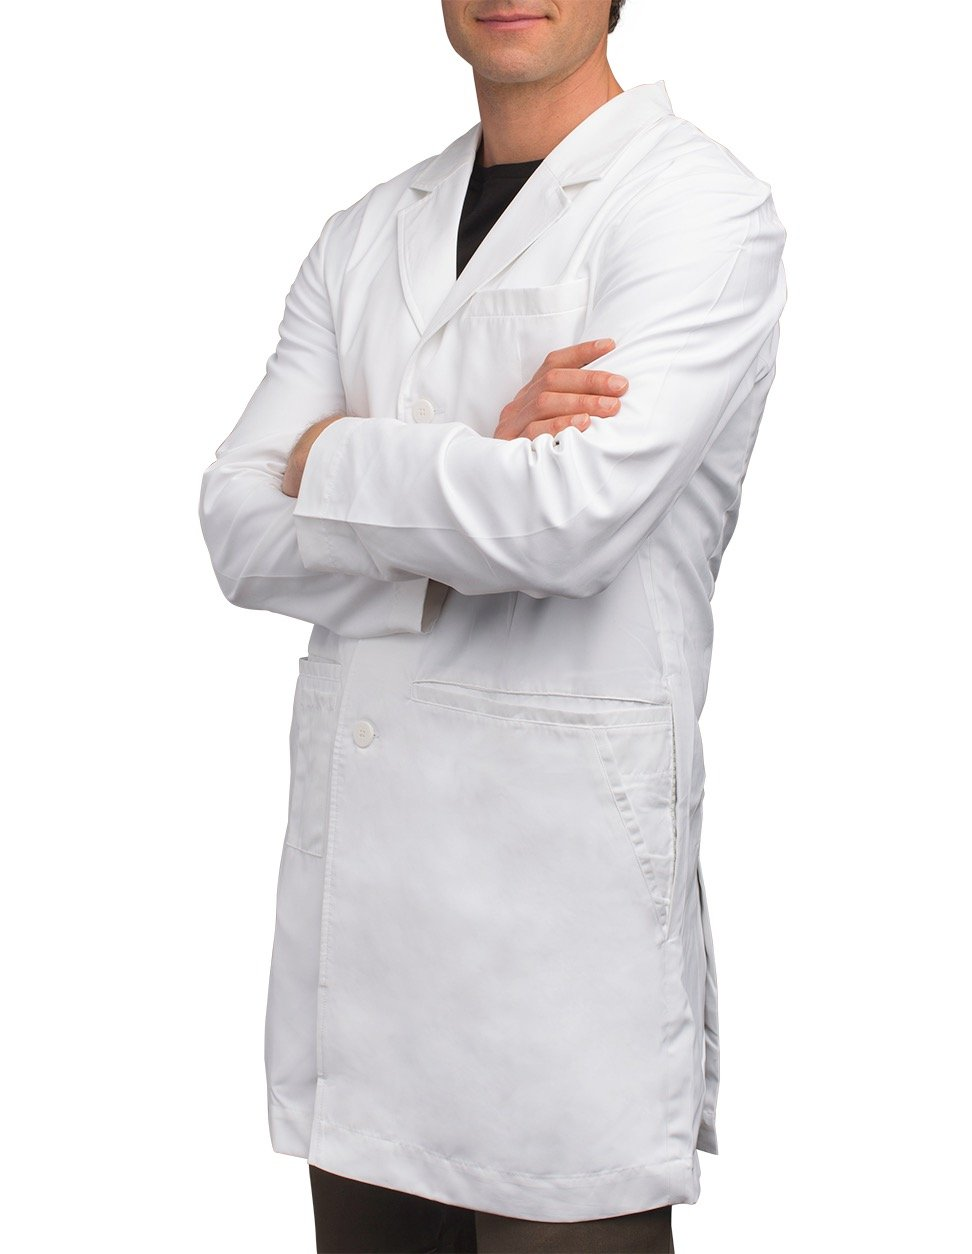 SCOTTeVEST Men's Lab Coat - 16 Pockets - Medical Uniform, Pickpocket Proof XL